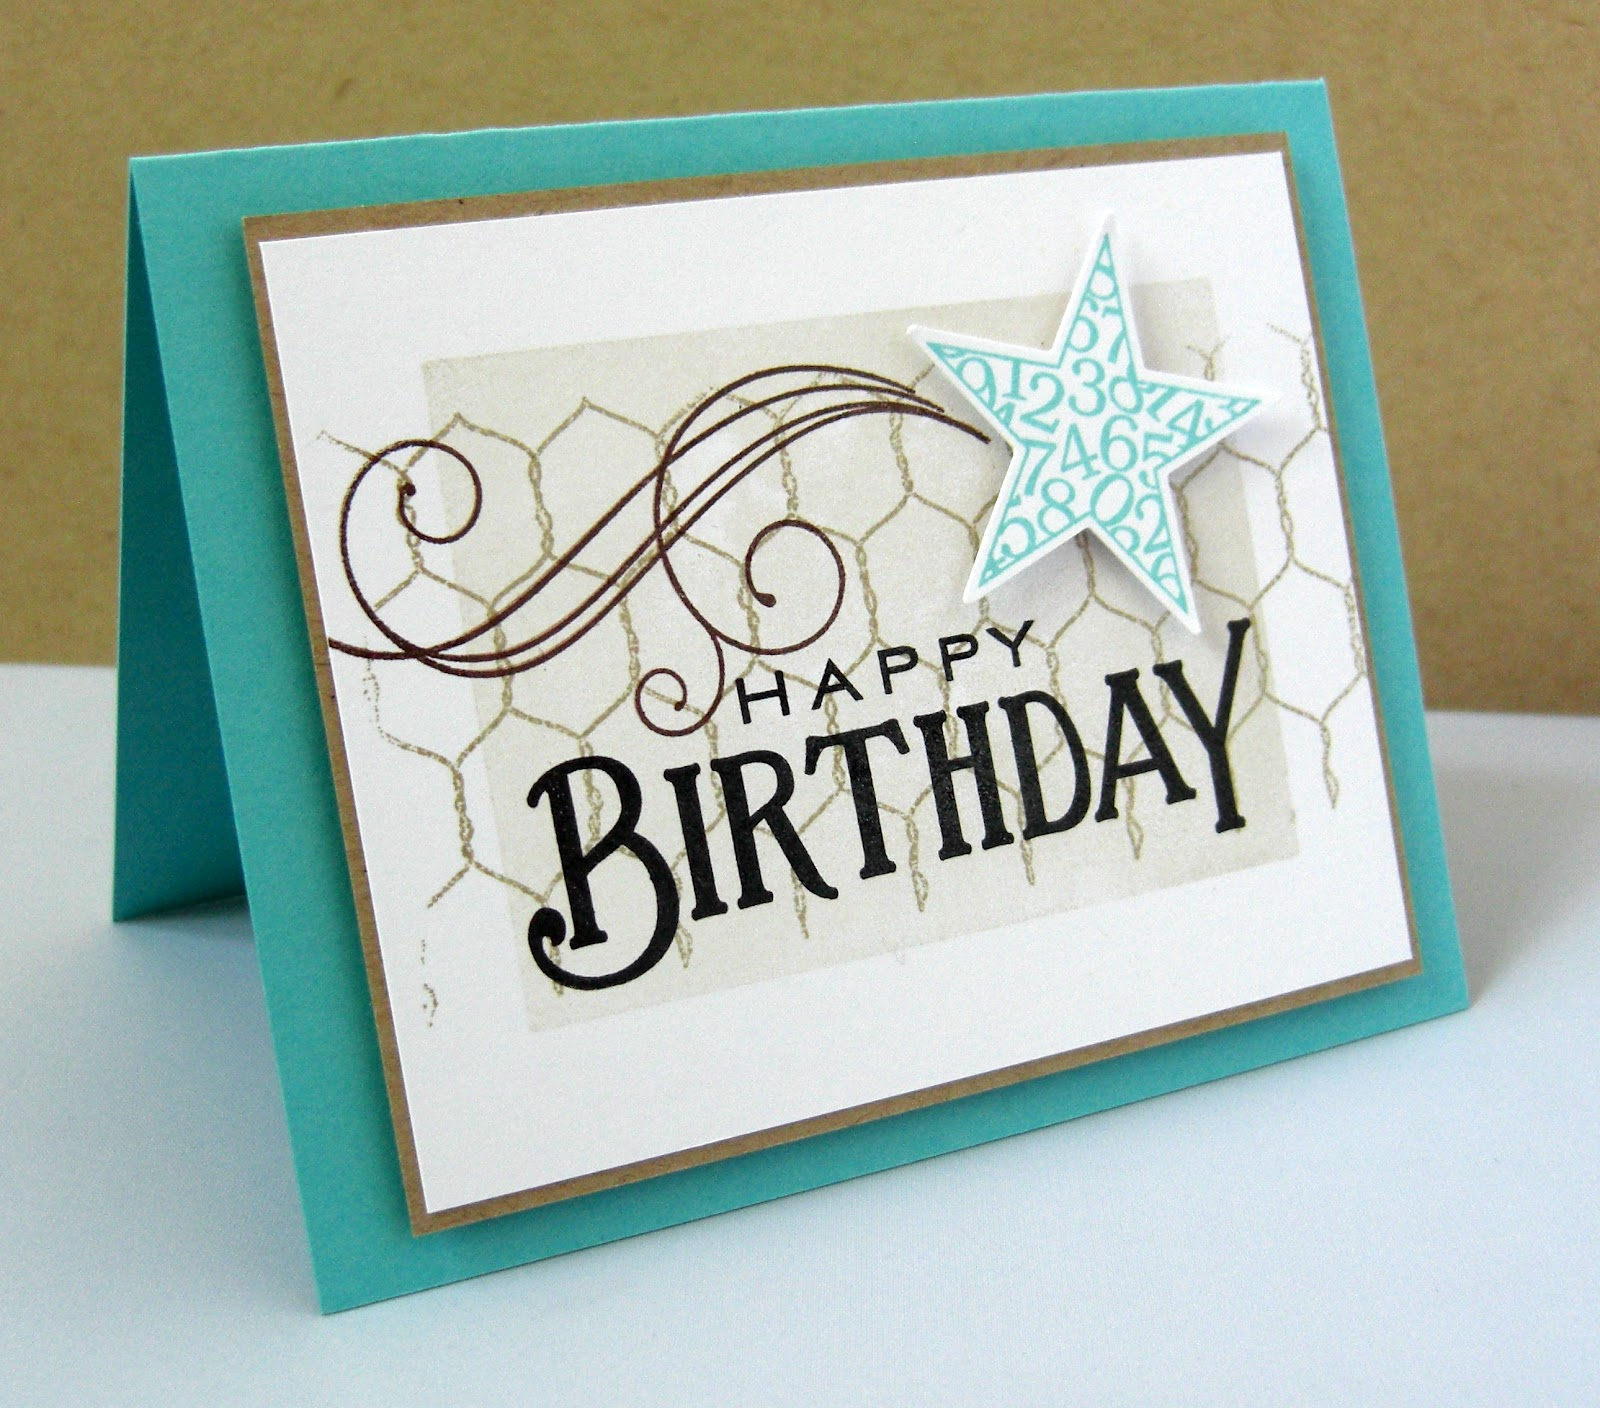 Happy birthday cards for men – Birthday Cards for Men